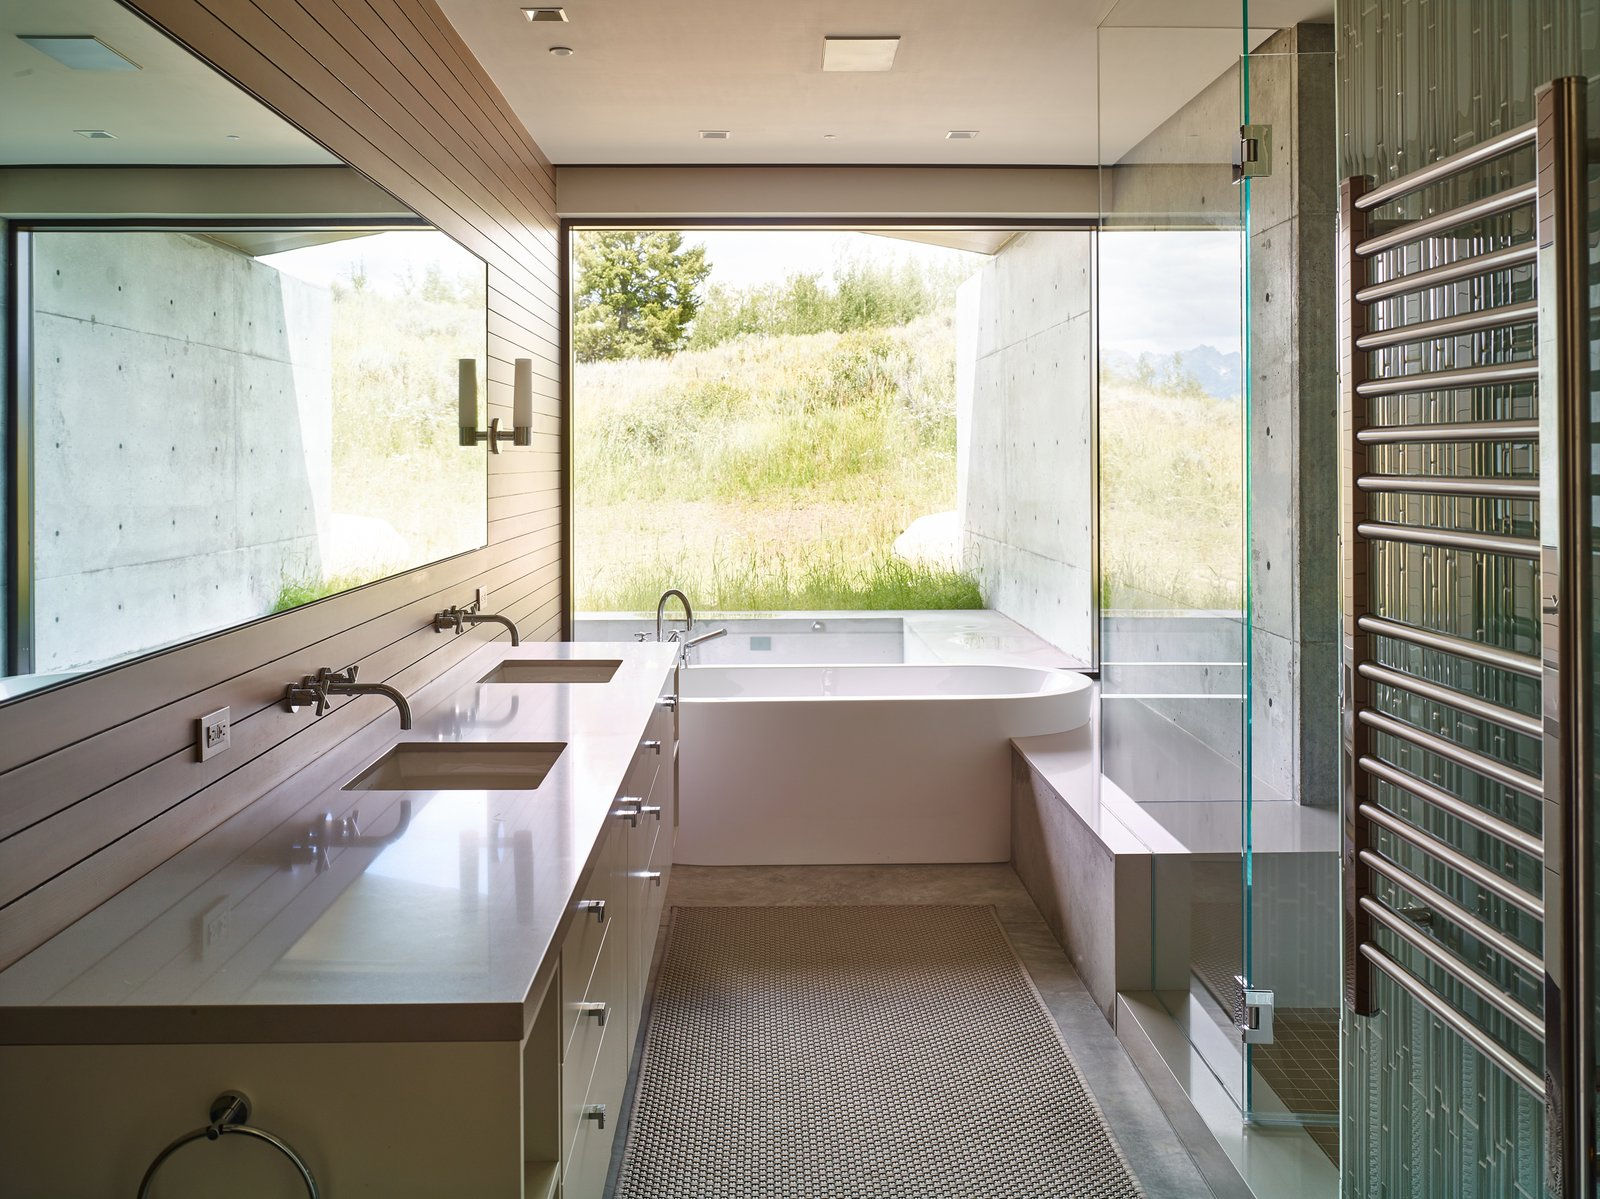 Bath Room, Freestanding Tub, Undermount Sink, Concrete Floor, Wall Lighting, Recessed Lighting, and Soaking Tub An indoor-outdoor bathroom further incorporates the exterior habitat.   Wyoming Residence by Abramson Teiger Architects